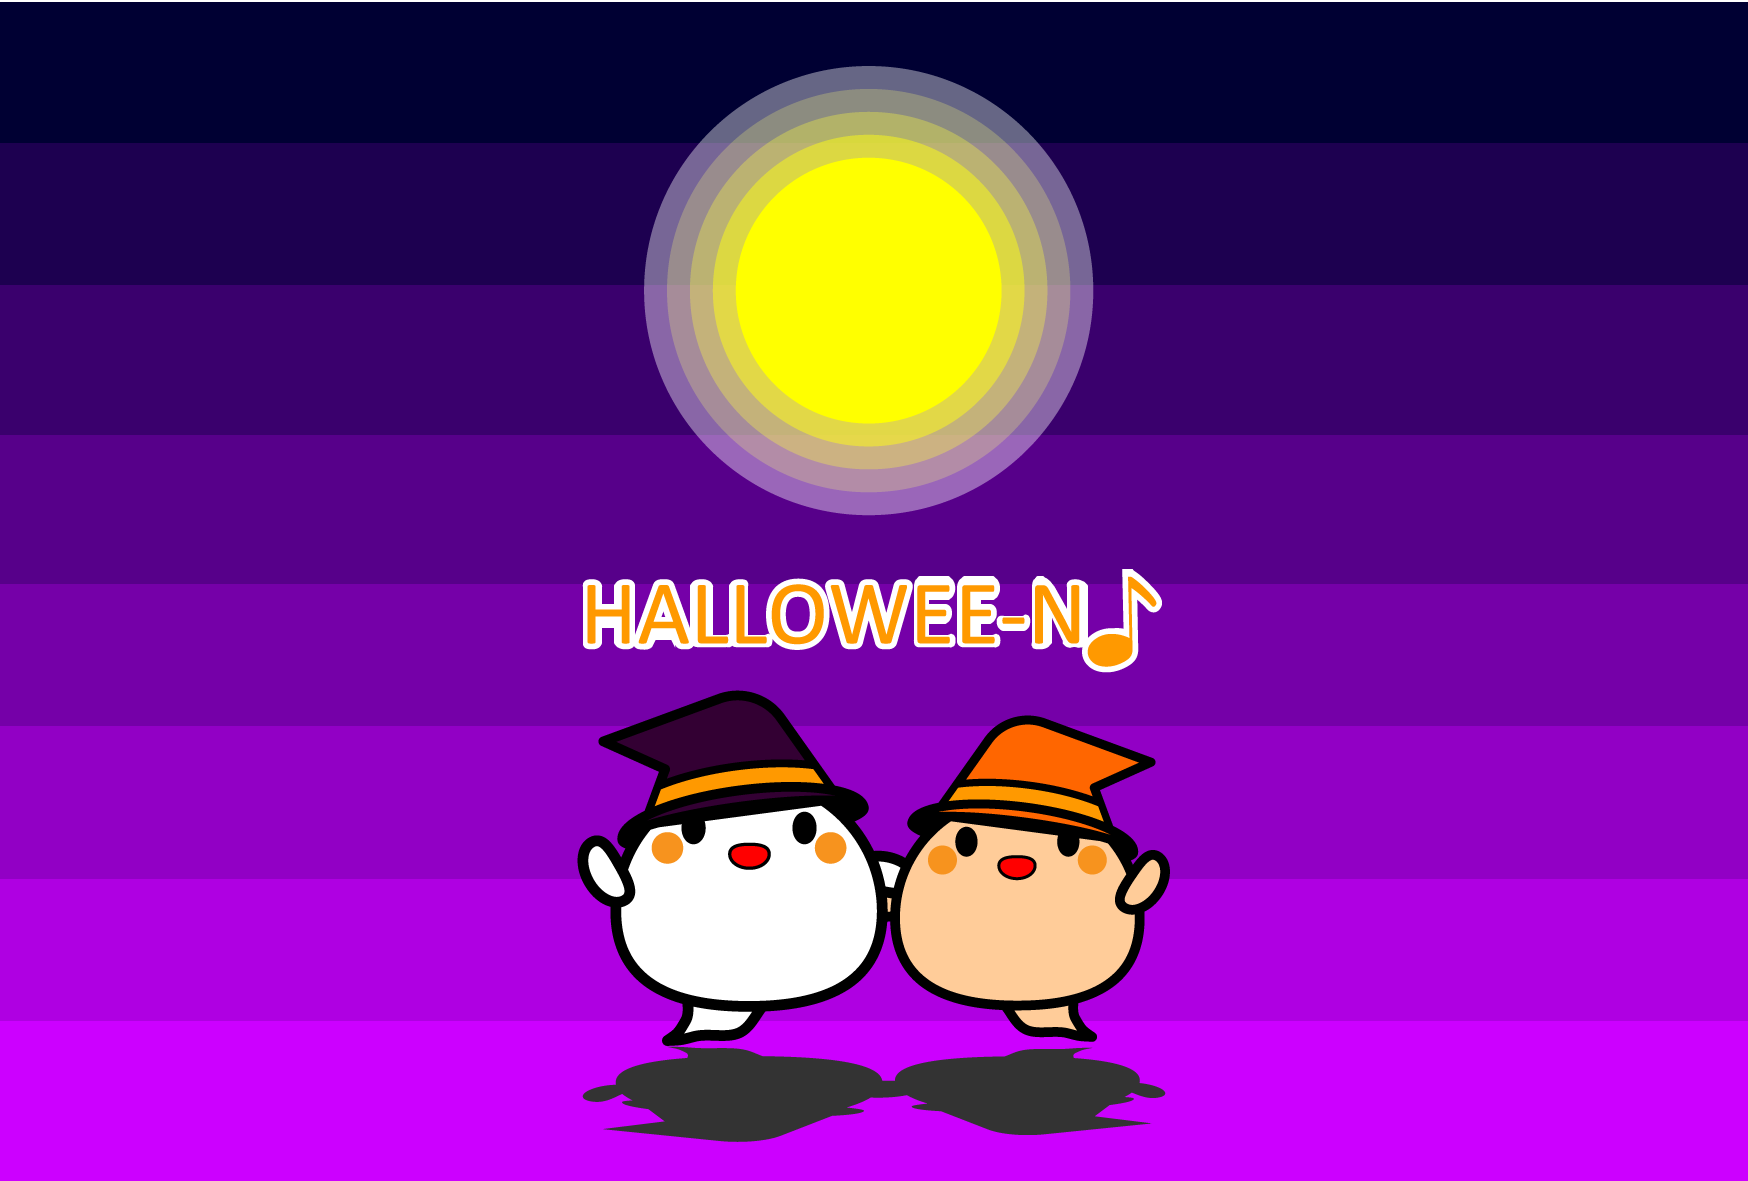 halloween-card(web)_hallowee-n